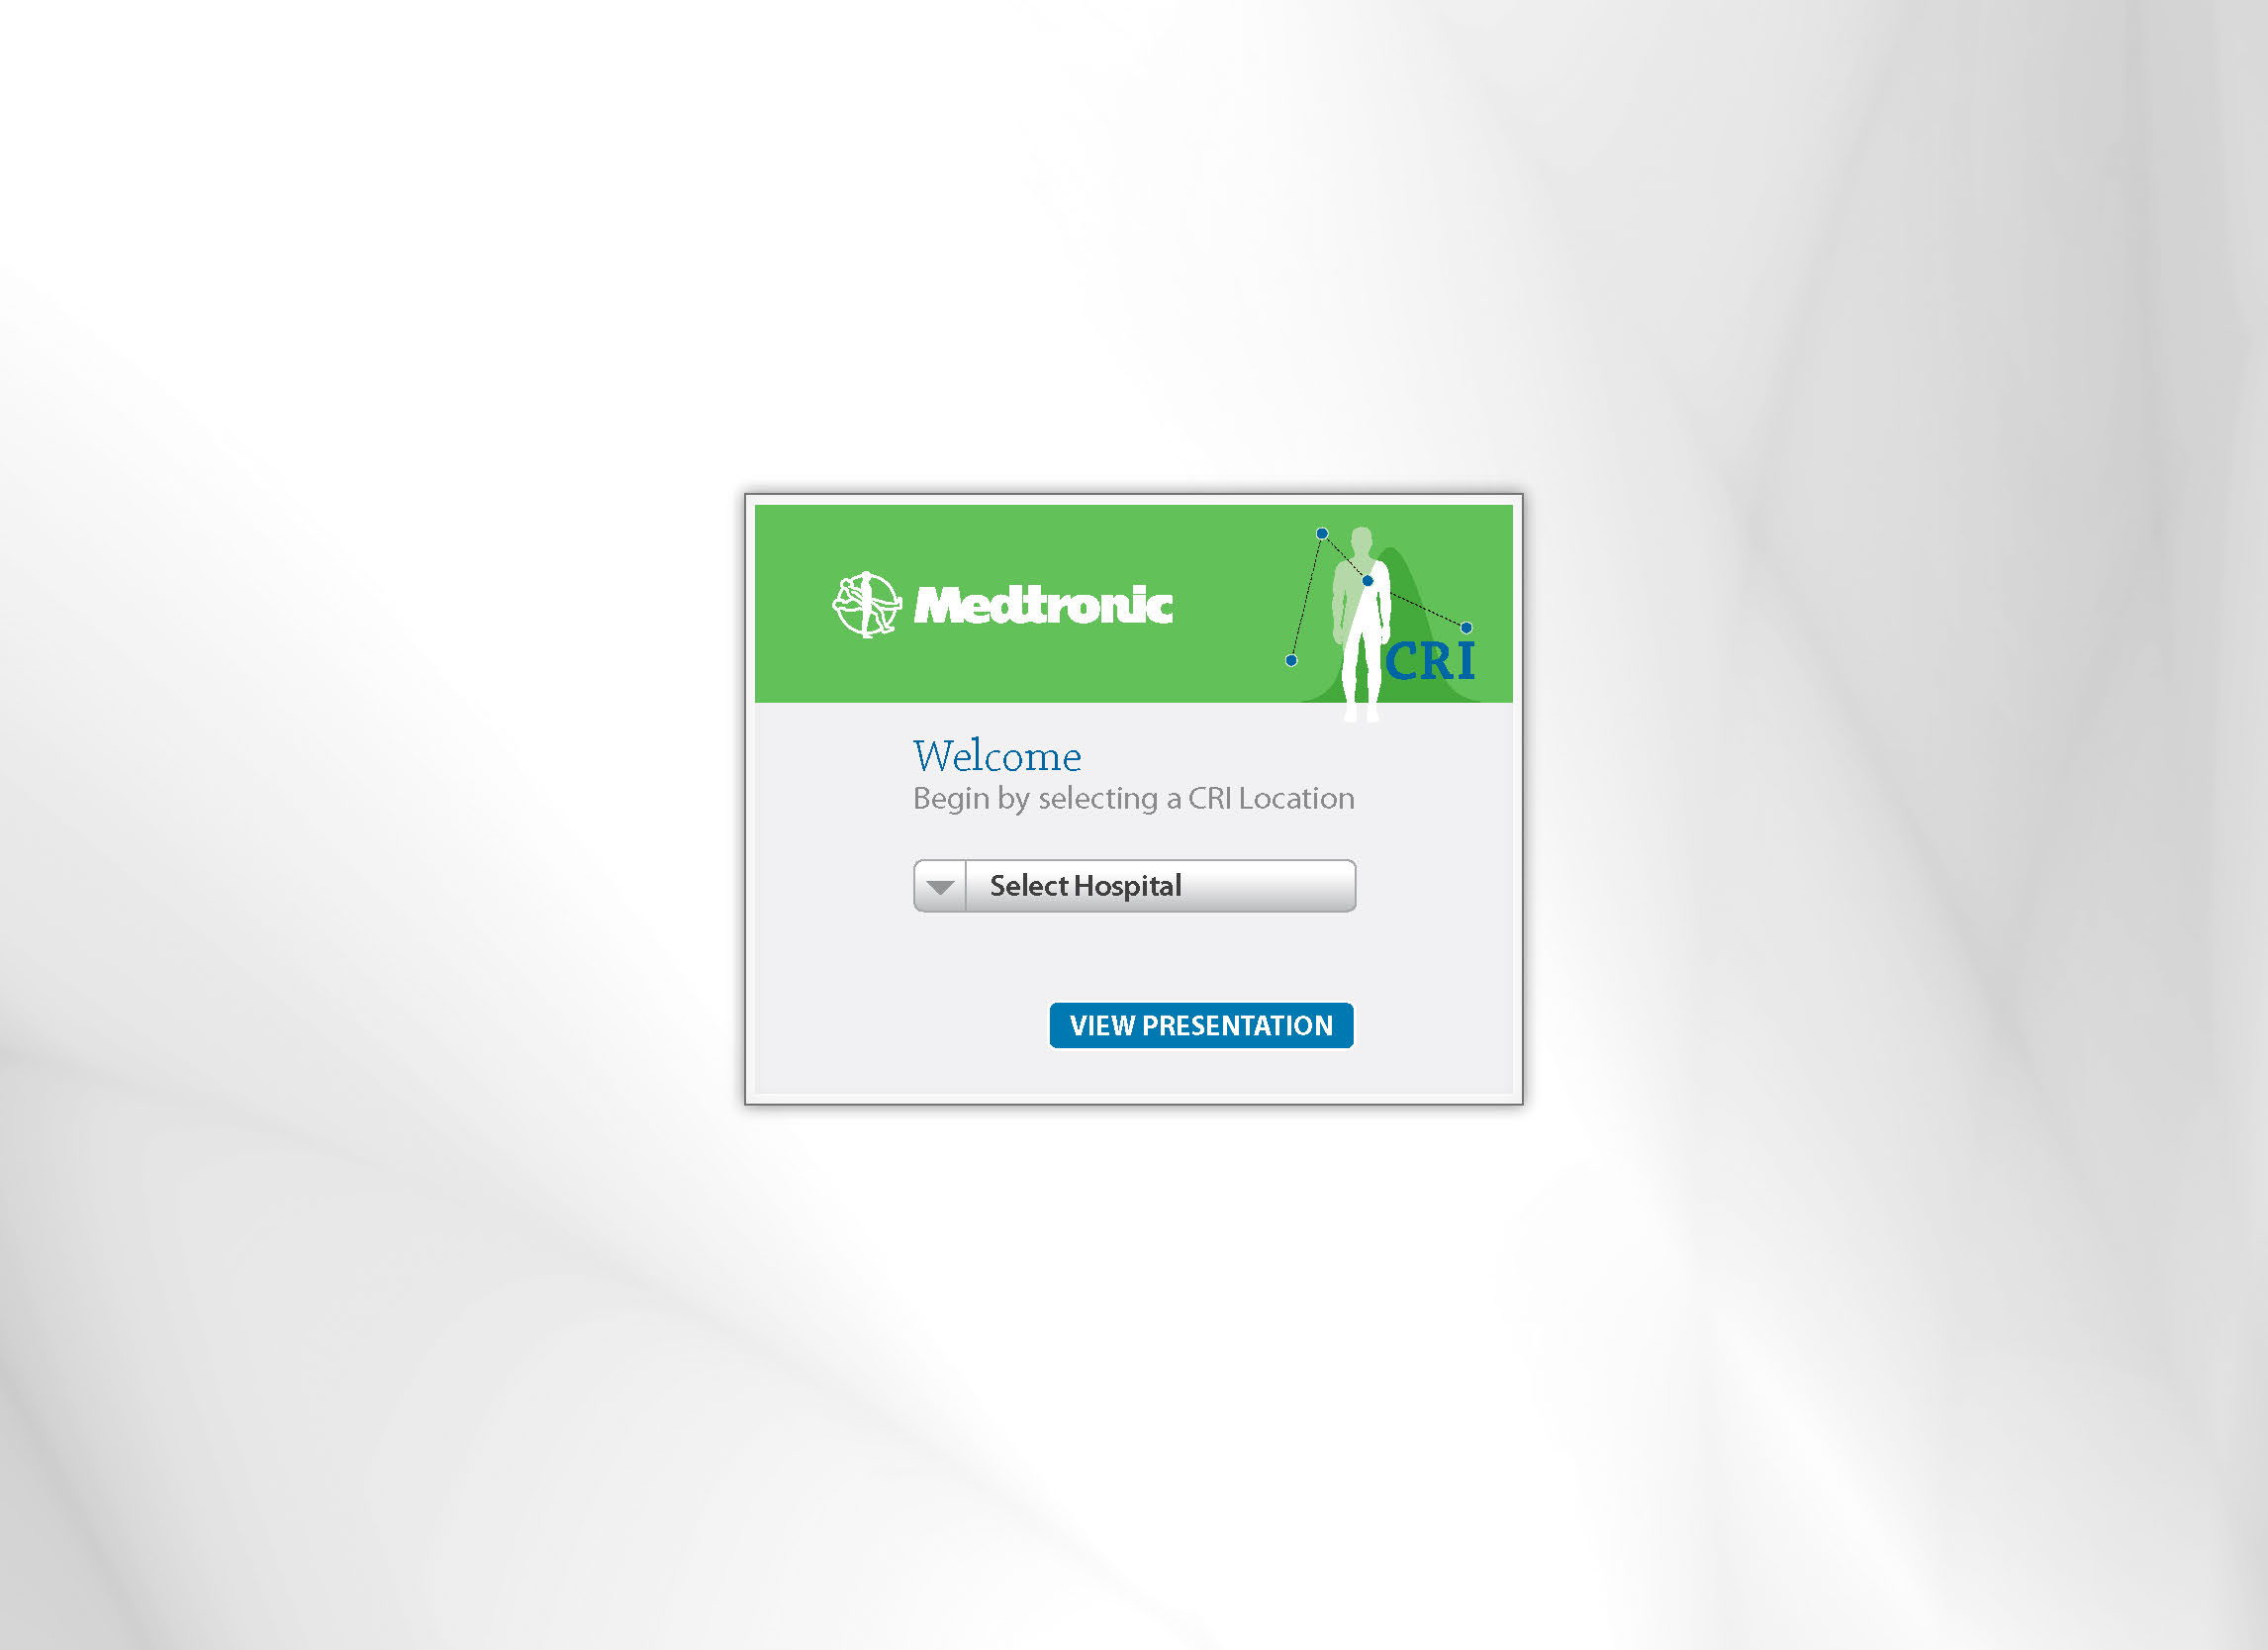 Medtronic-040417_Page_02.jpg